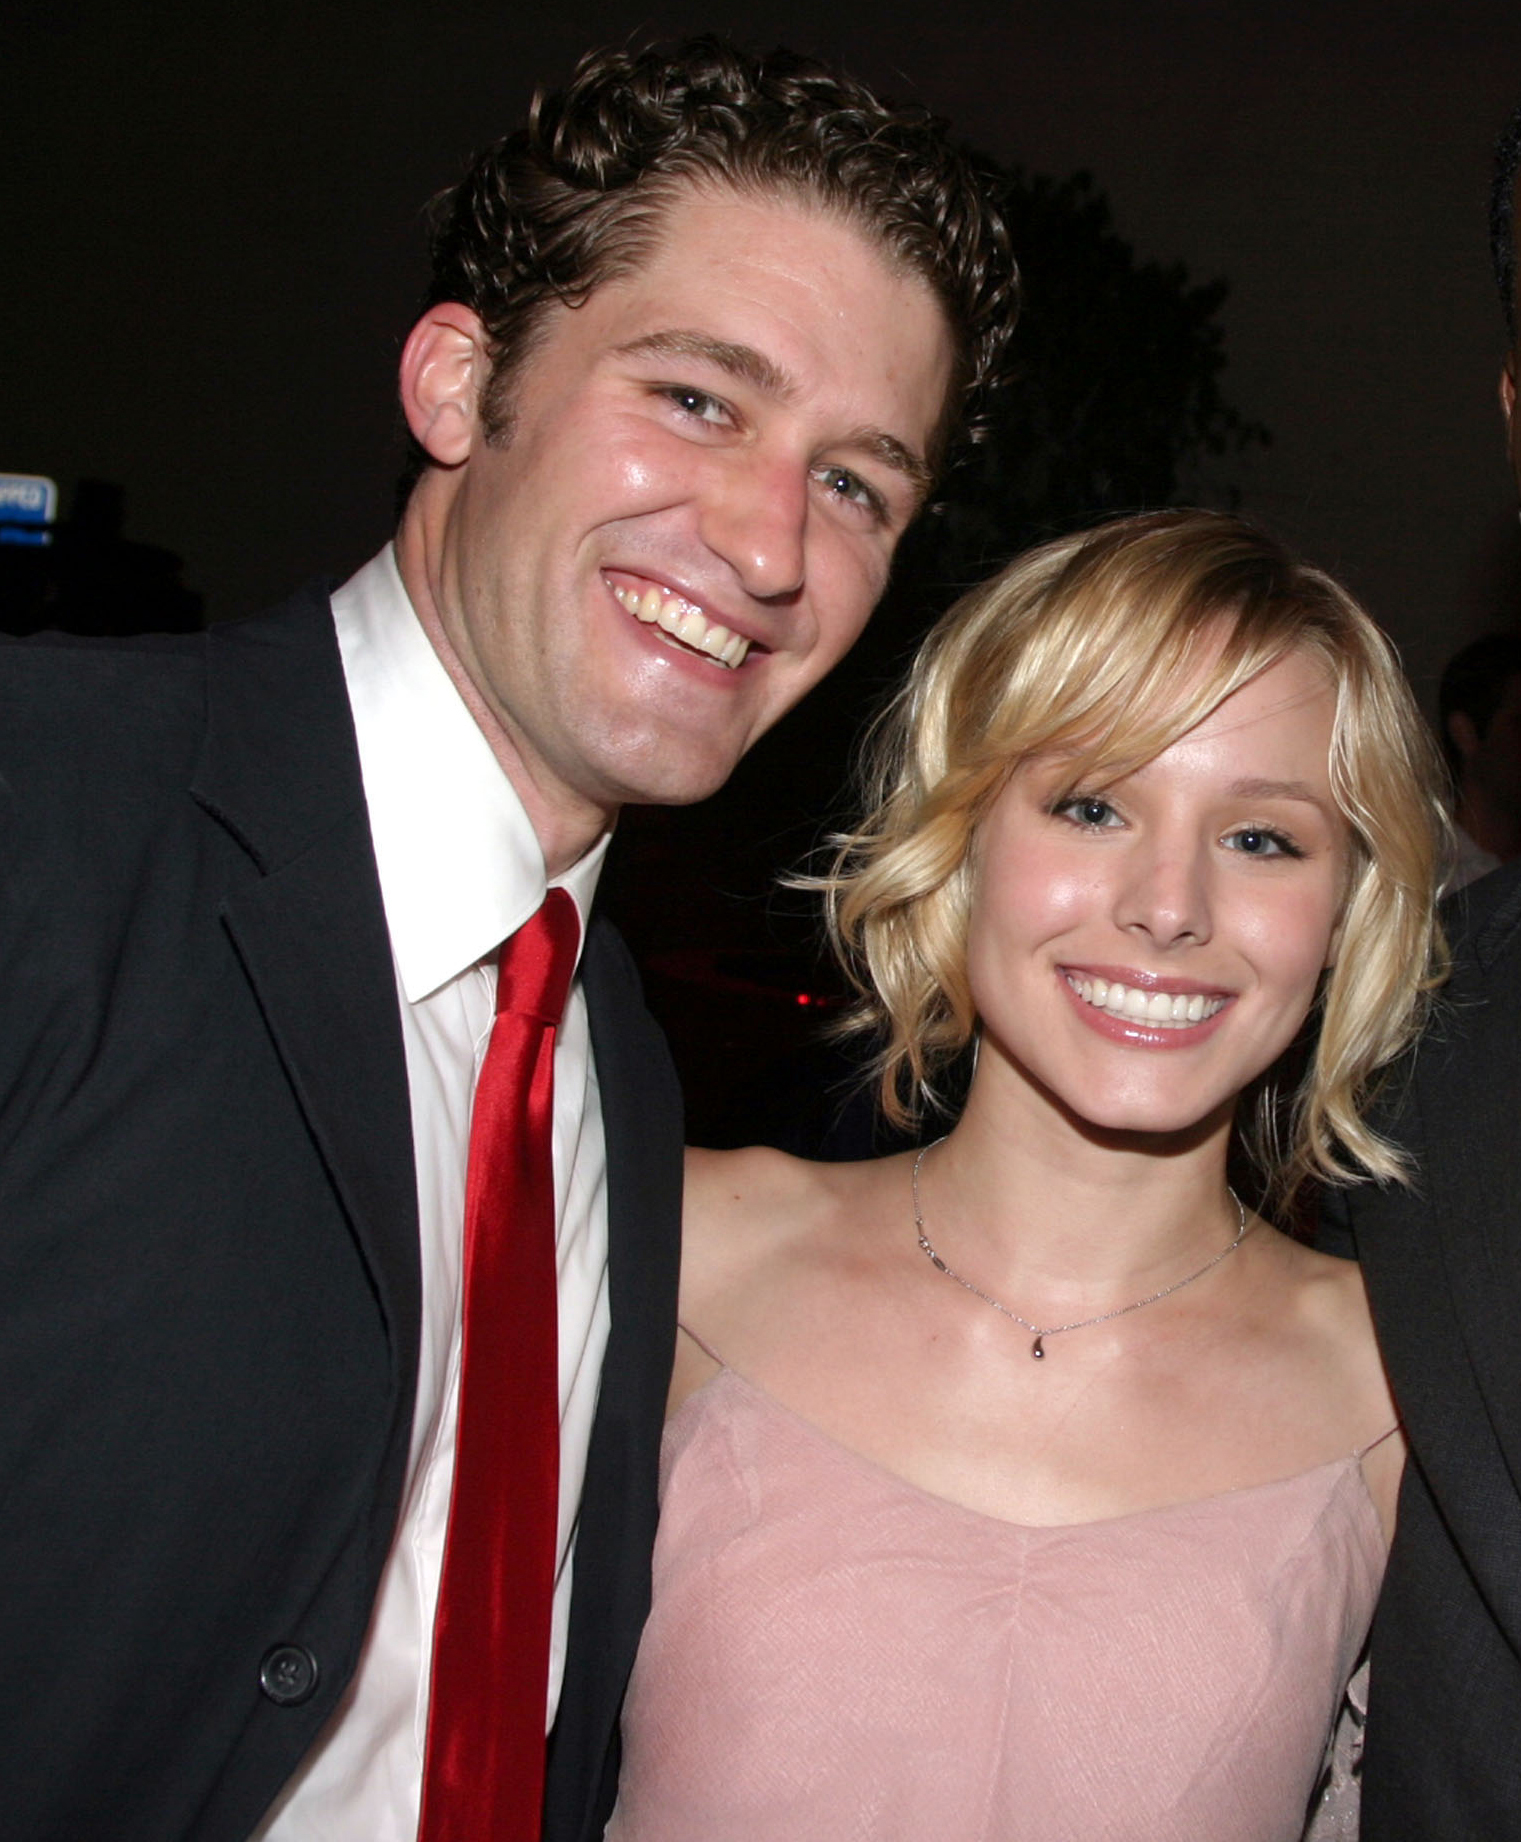 """Matthew Morrison and Kristen Bell attend an afterparty for the opening night of """"Hairspray"""" in Los Angeles on July 21, 2004."""